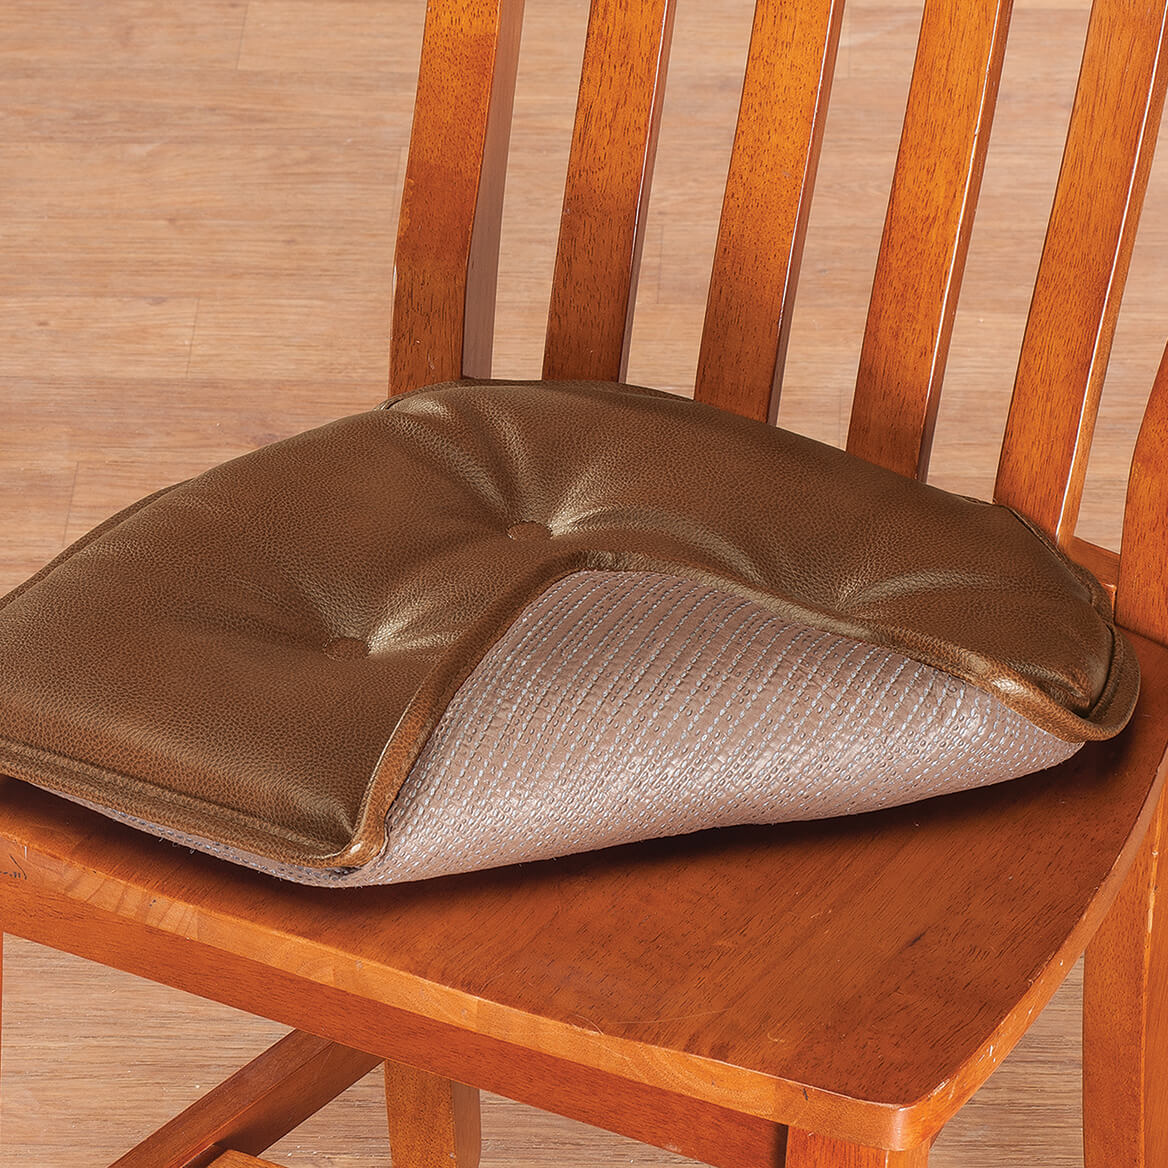 St Germaine Faux Leather Chair Pad with Gripper